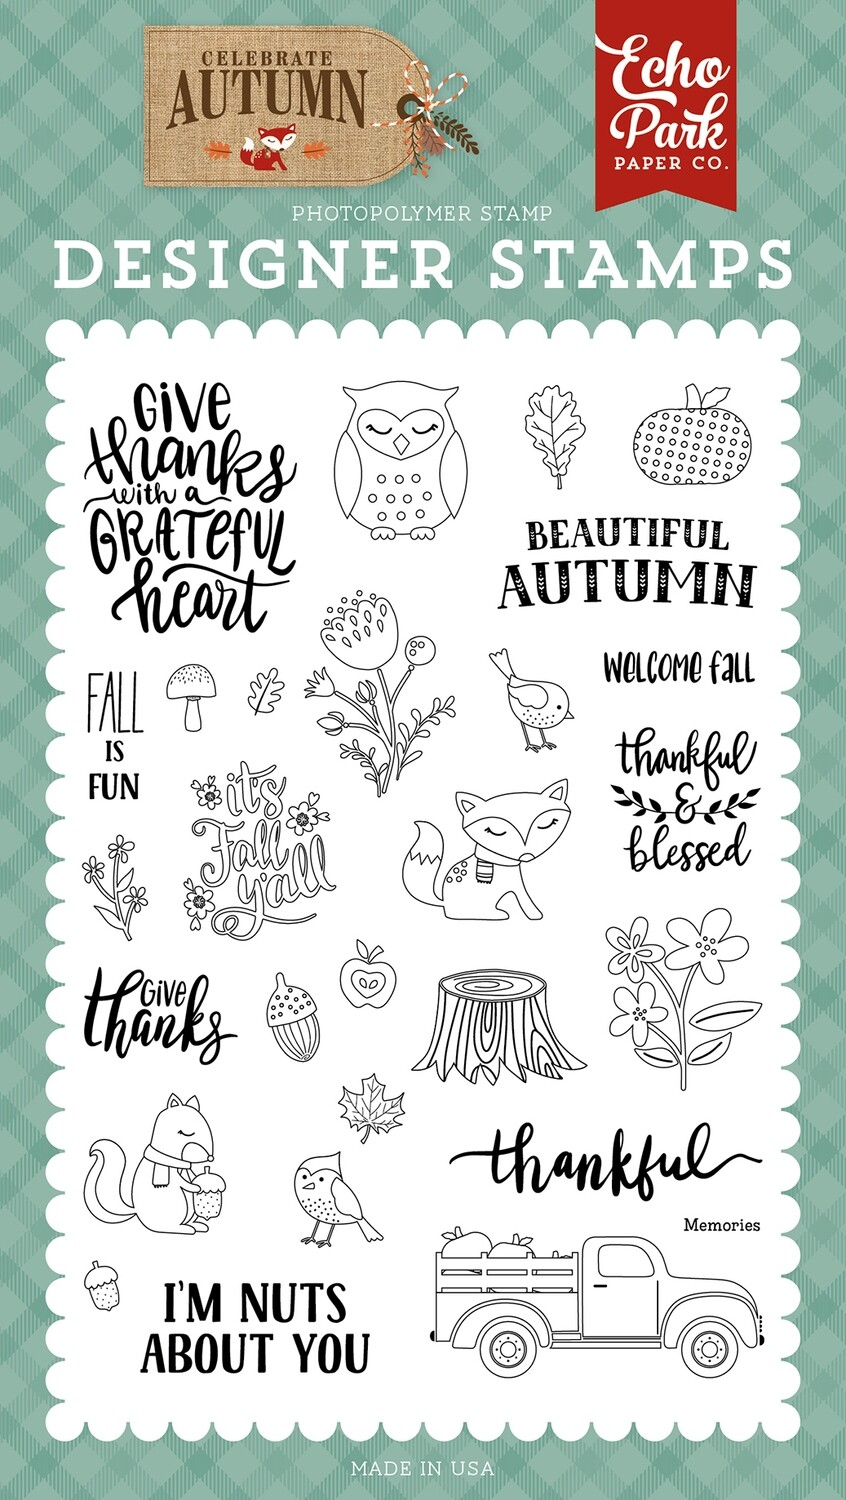 Echo Park Celebrate Autumn Stamp Set Nuts About You